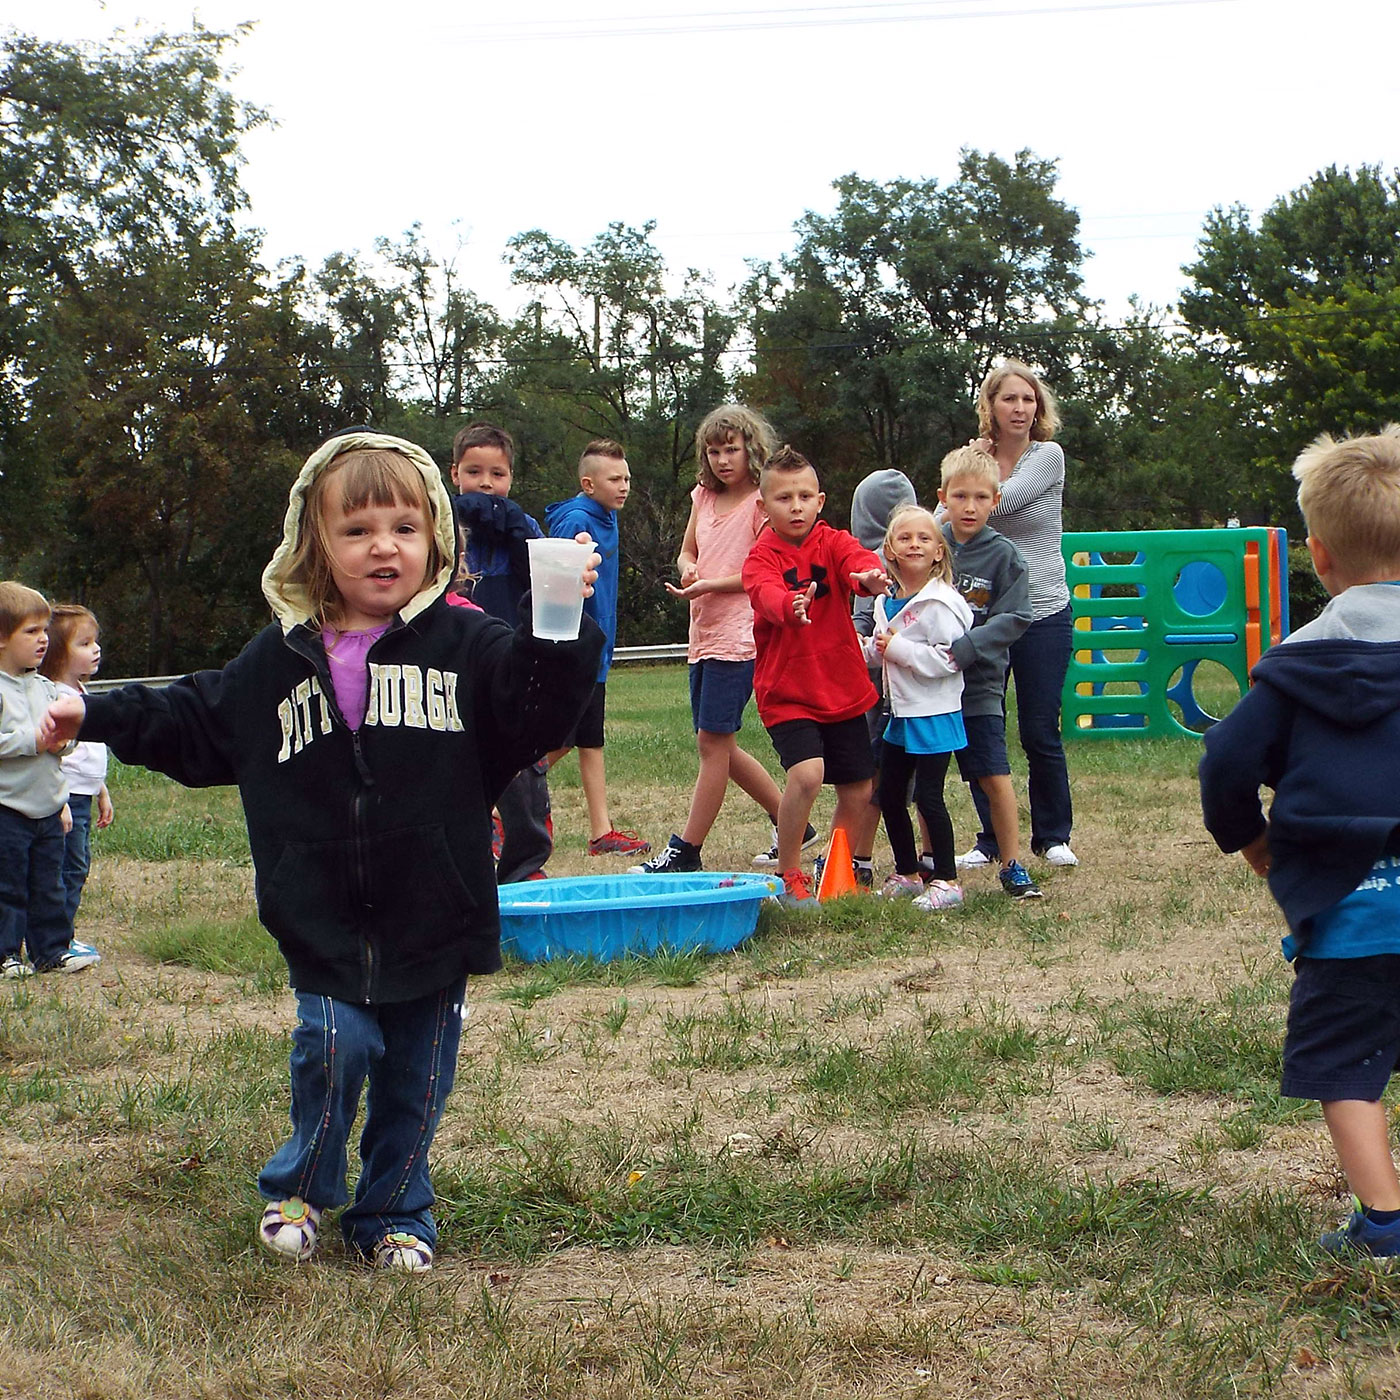 Kids from the preschool playing outside